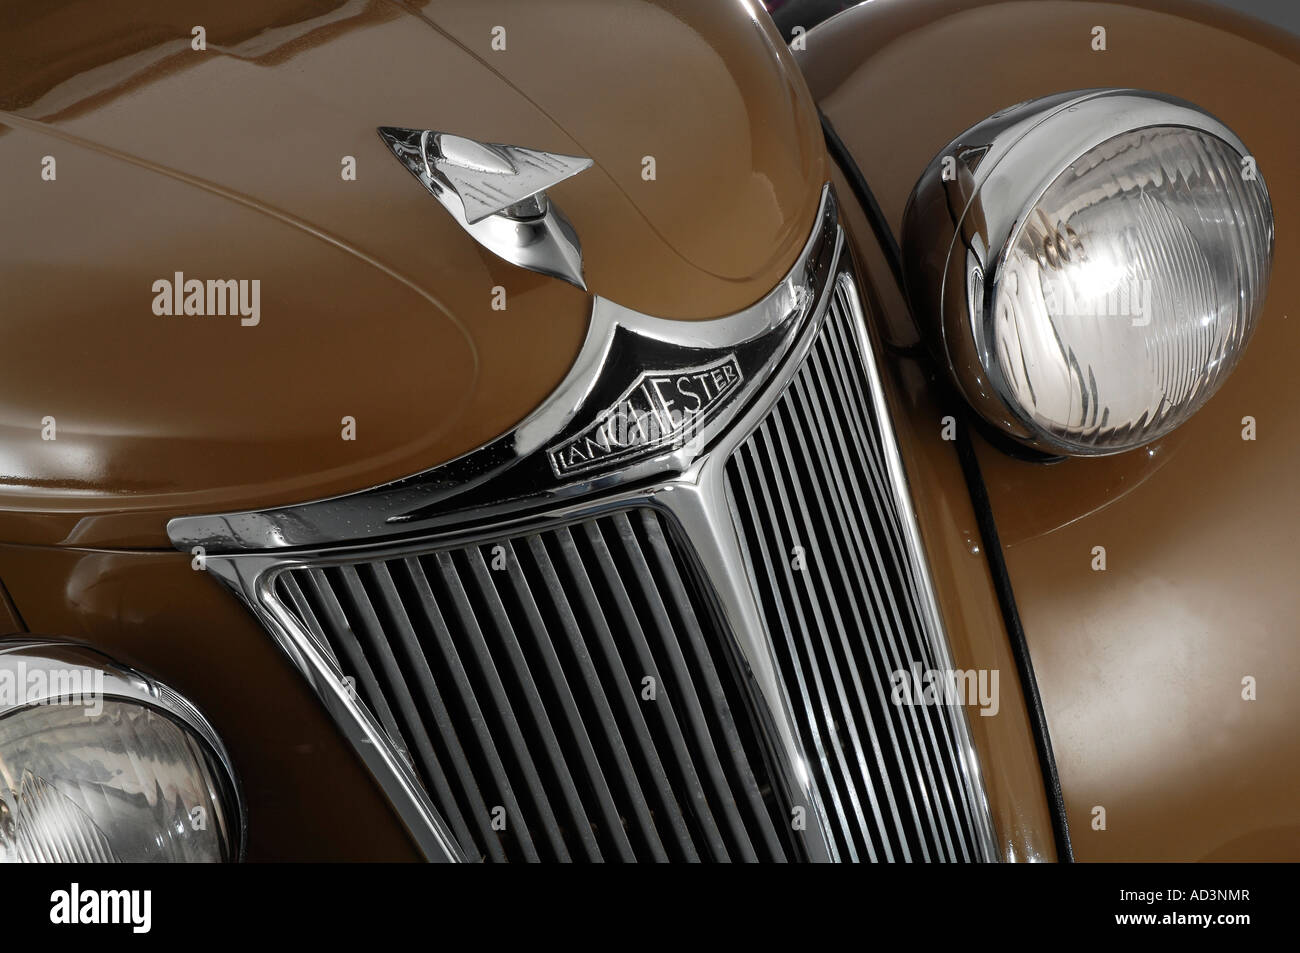 1950 Lanchester LD10 grille detail - Stock Image